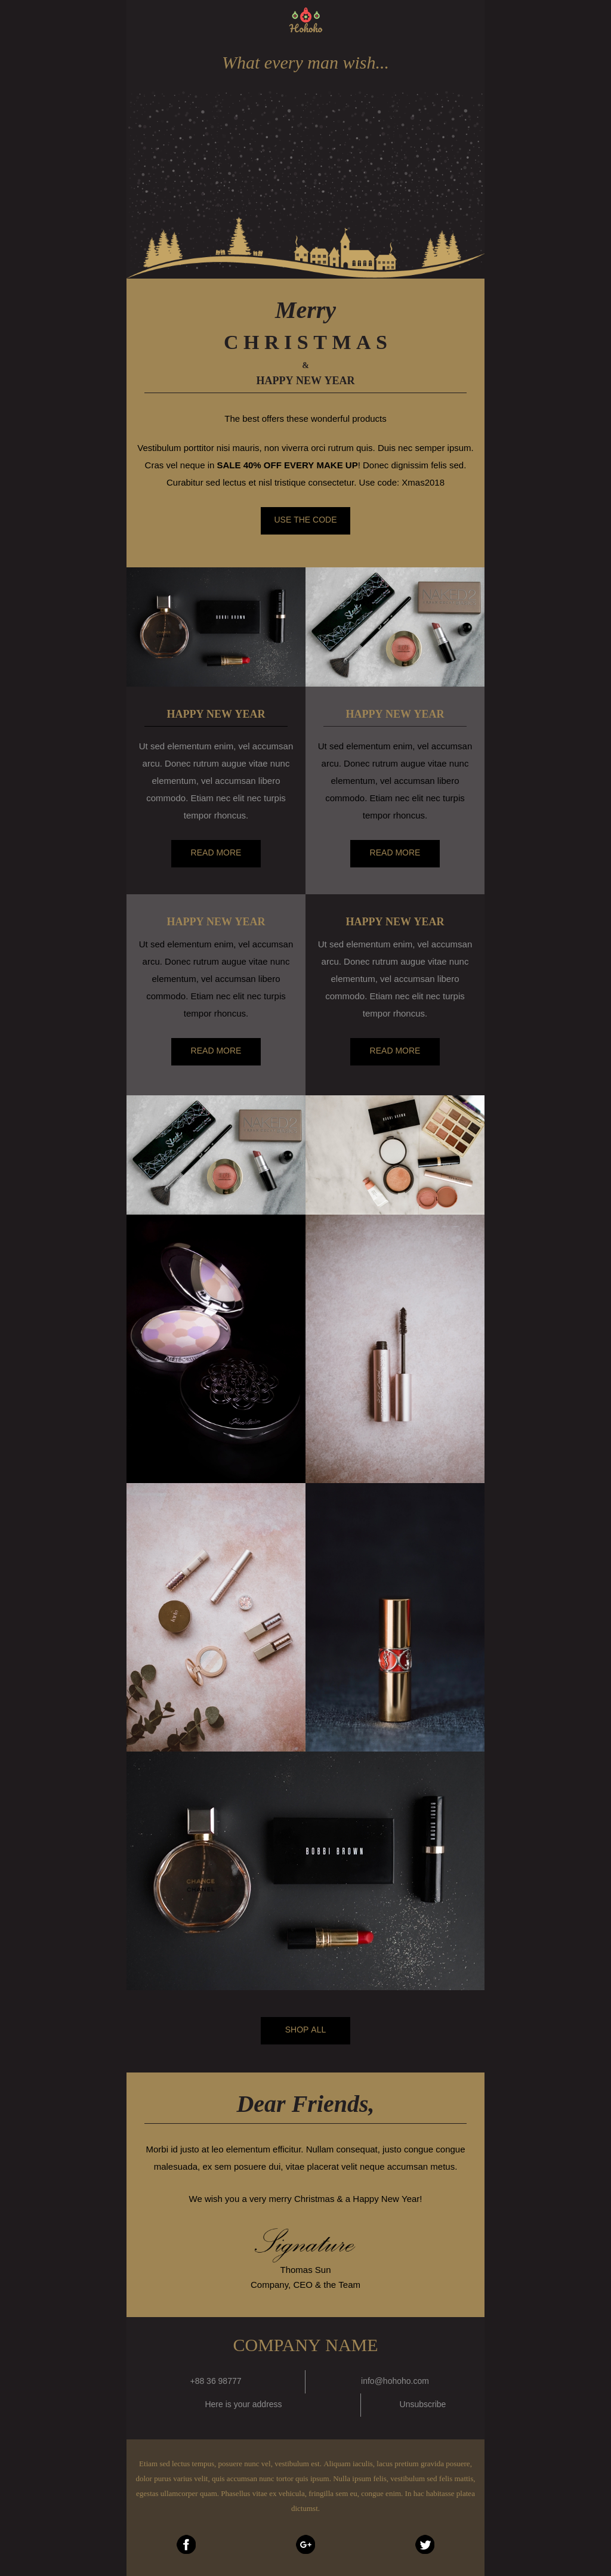 Fashion And Beauty Ecommerce Christmas Template